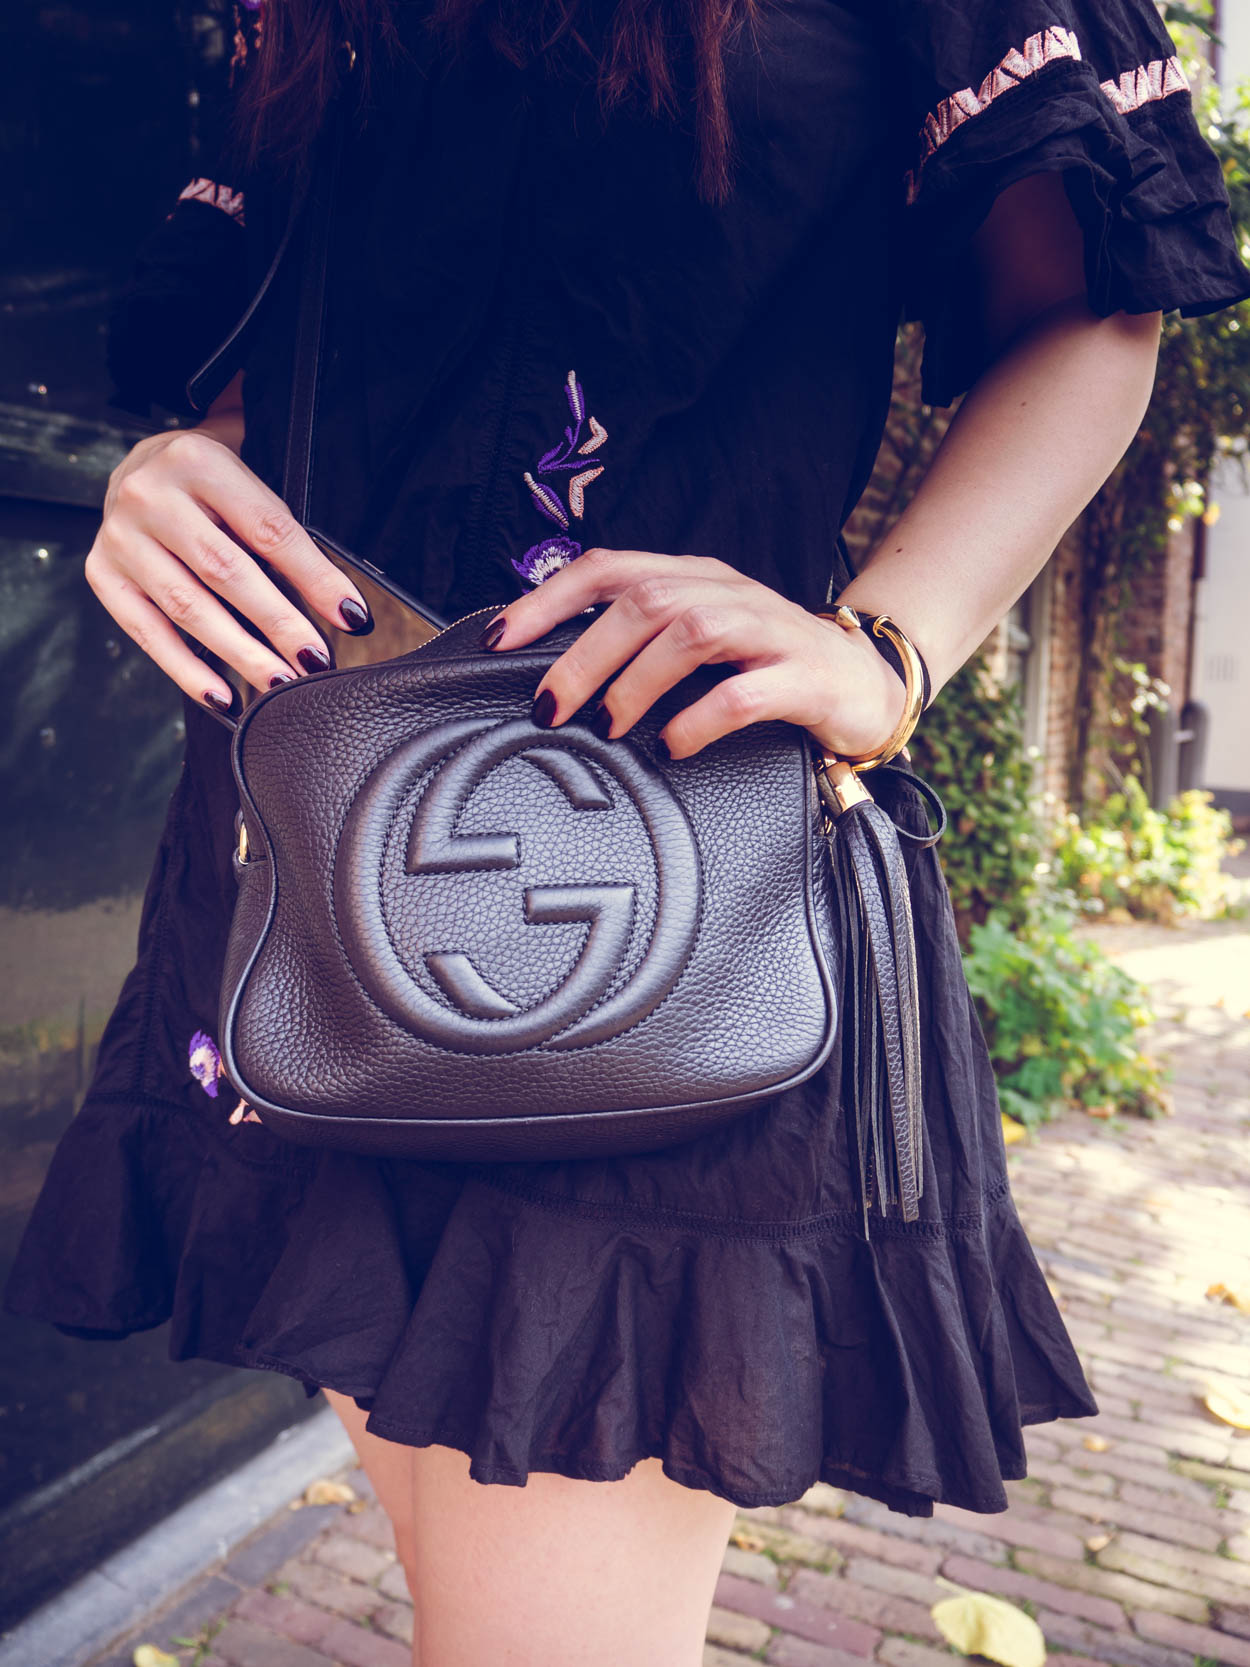 WHAT'S IN THE BAG: GUCCI DISCO BAG | THECHICITALIAN | An in-depth Gucci Disco bag review